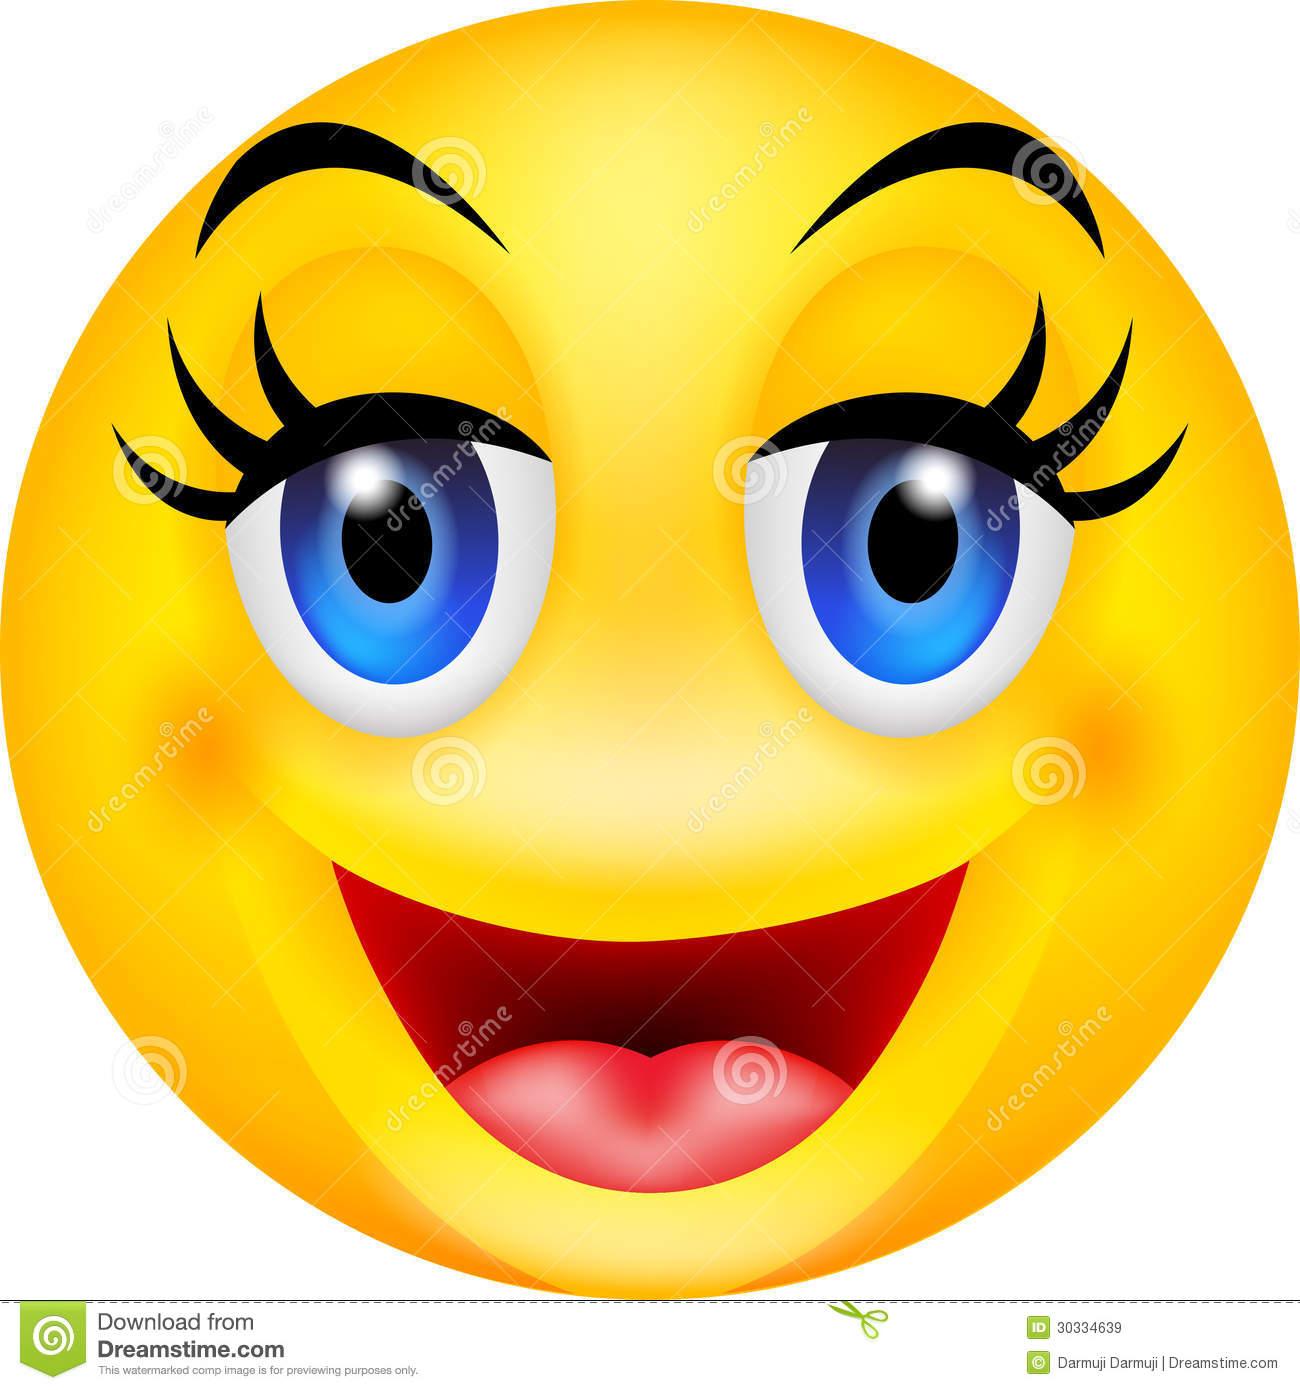 Funny Smile Clipart - Clipart Kid